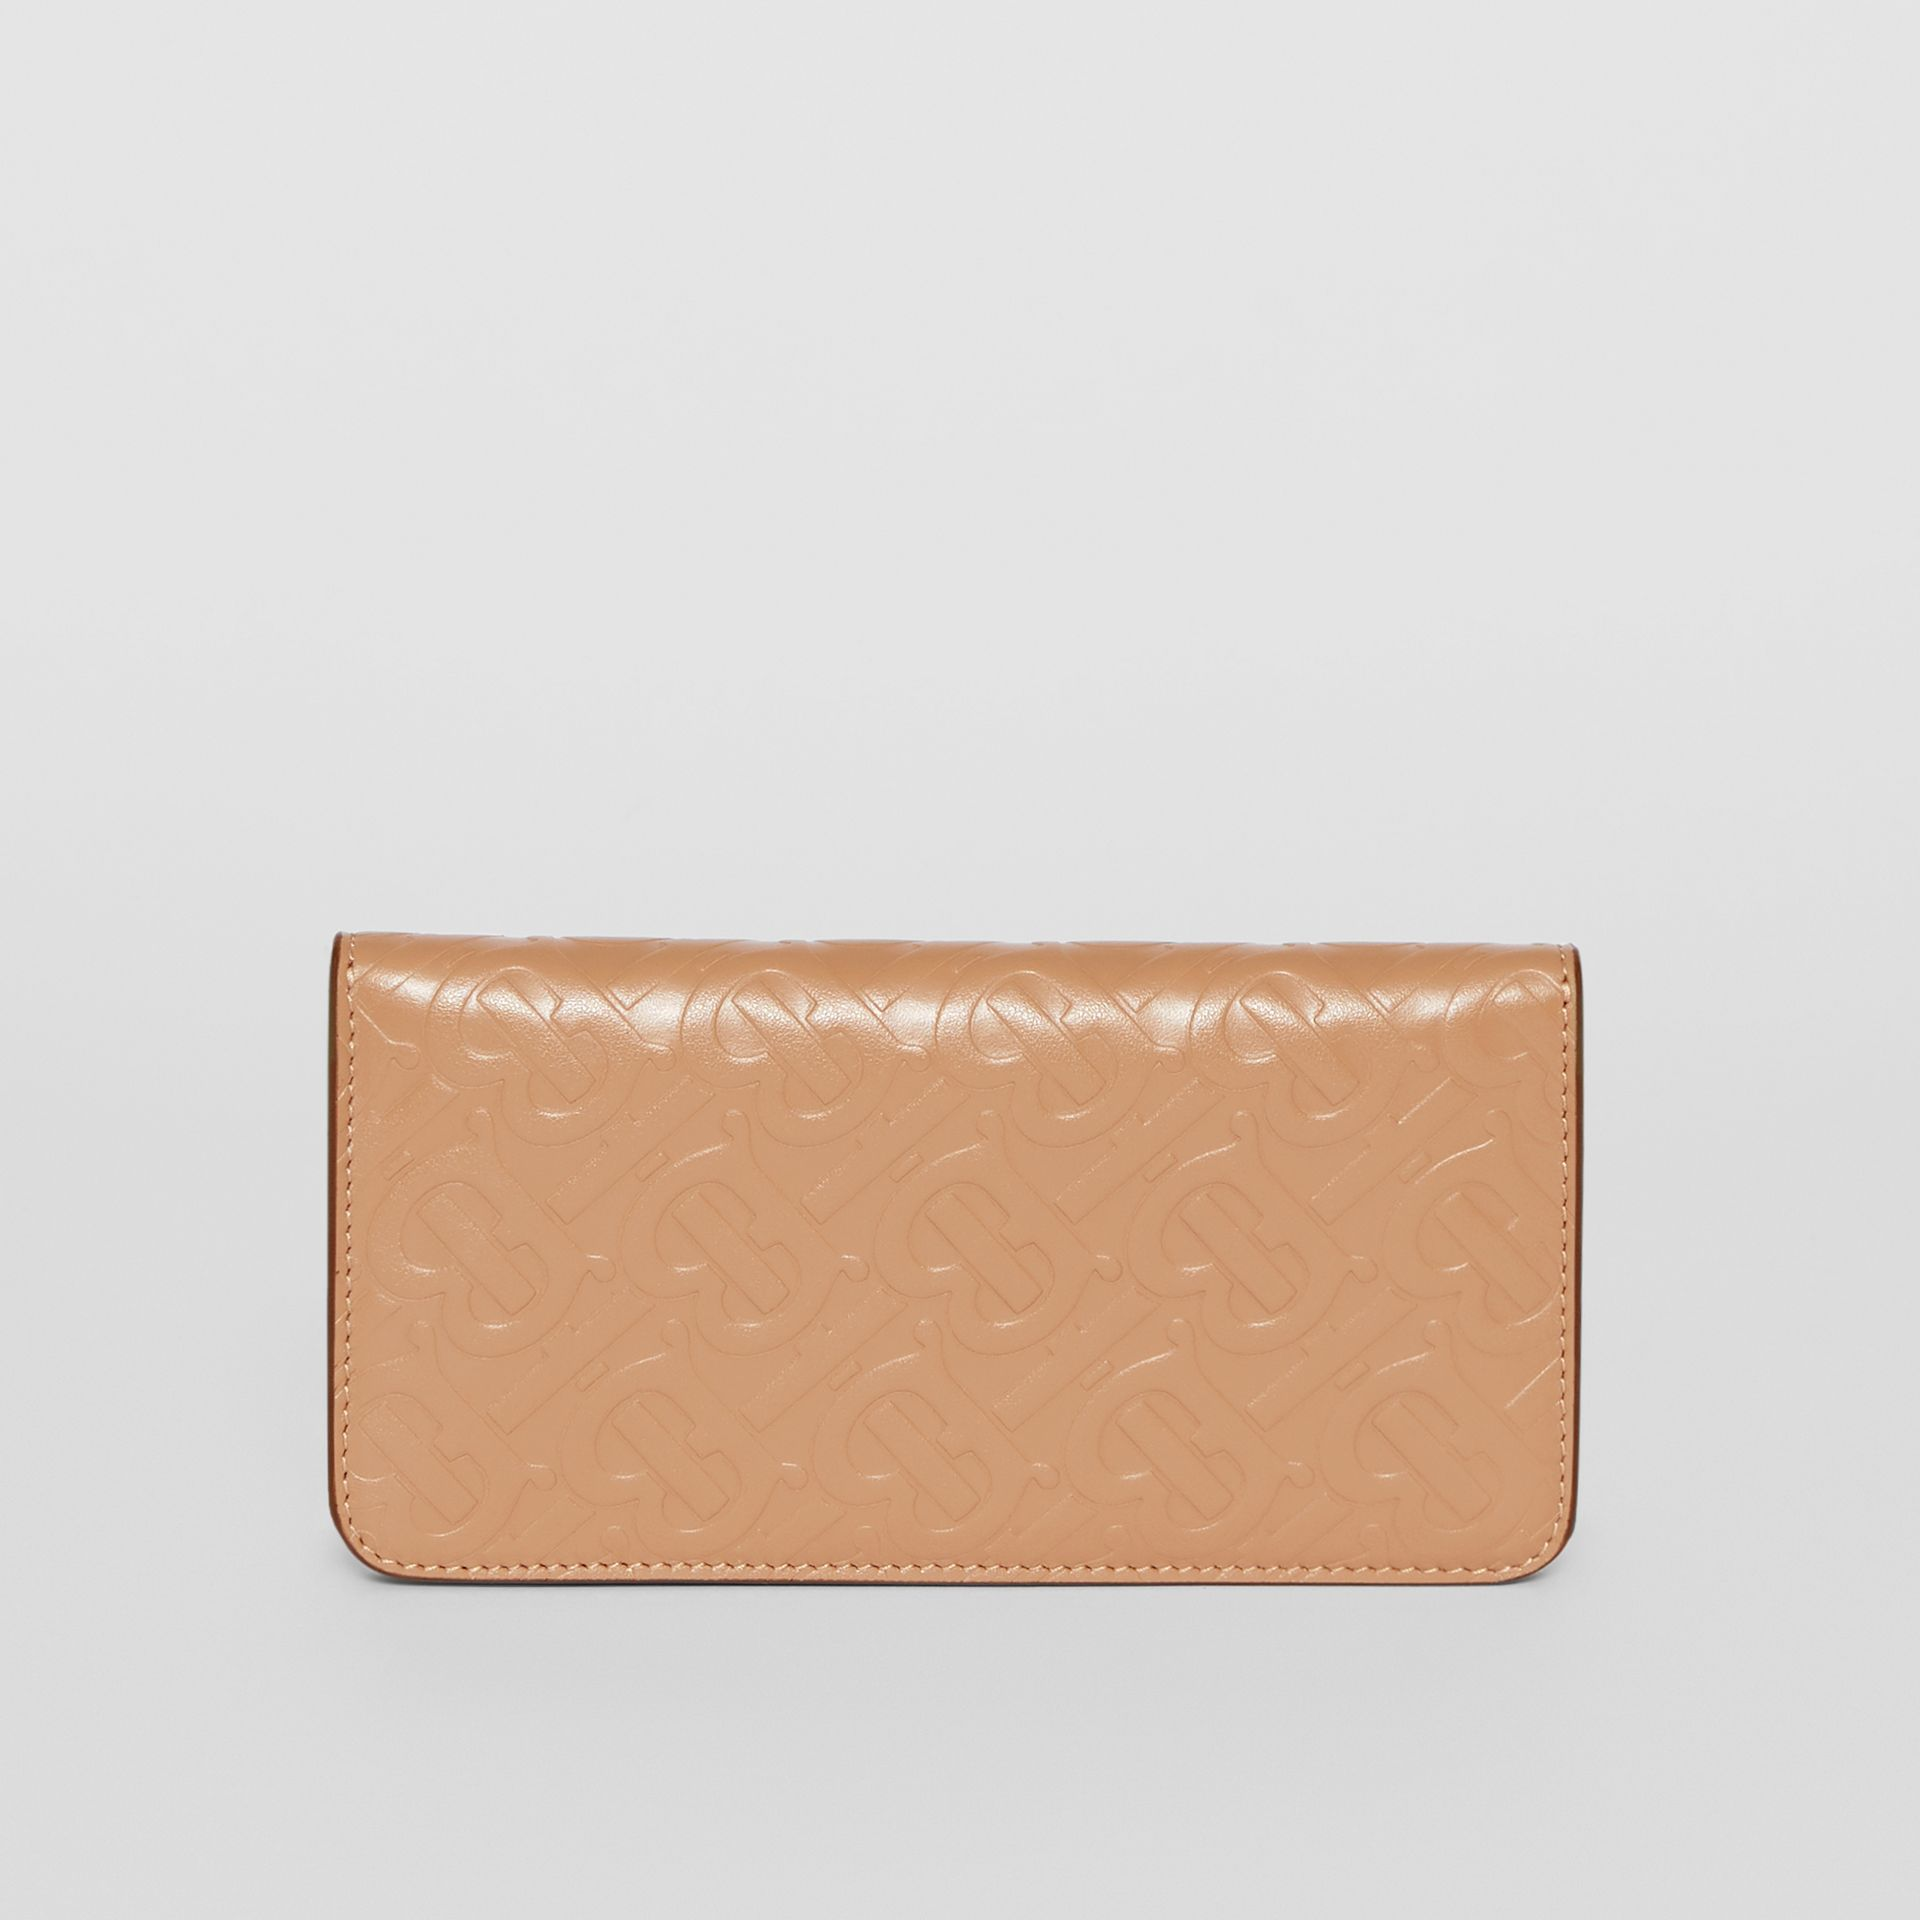 Monogram Leather Phone Wallet in Light Camel | Burberry United Kingdom - gallery image 5